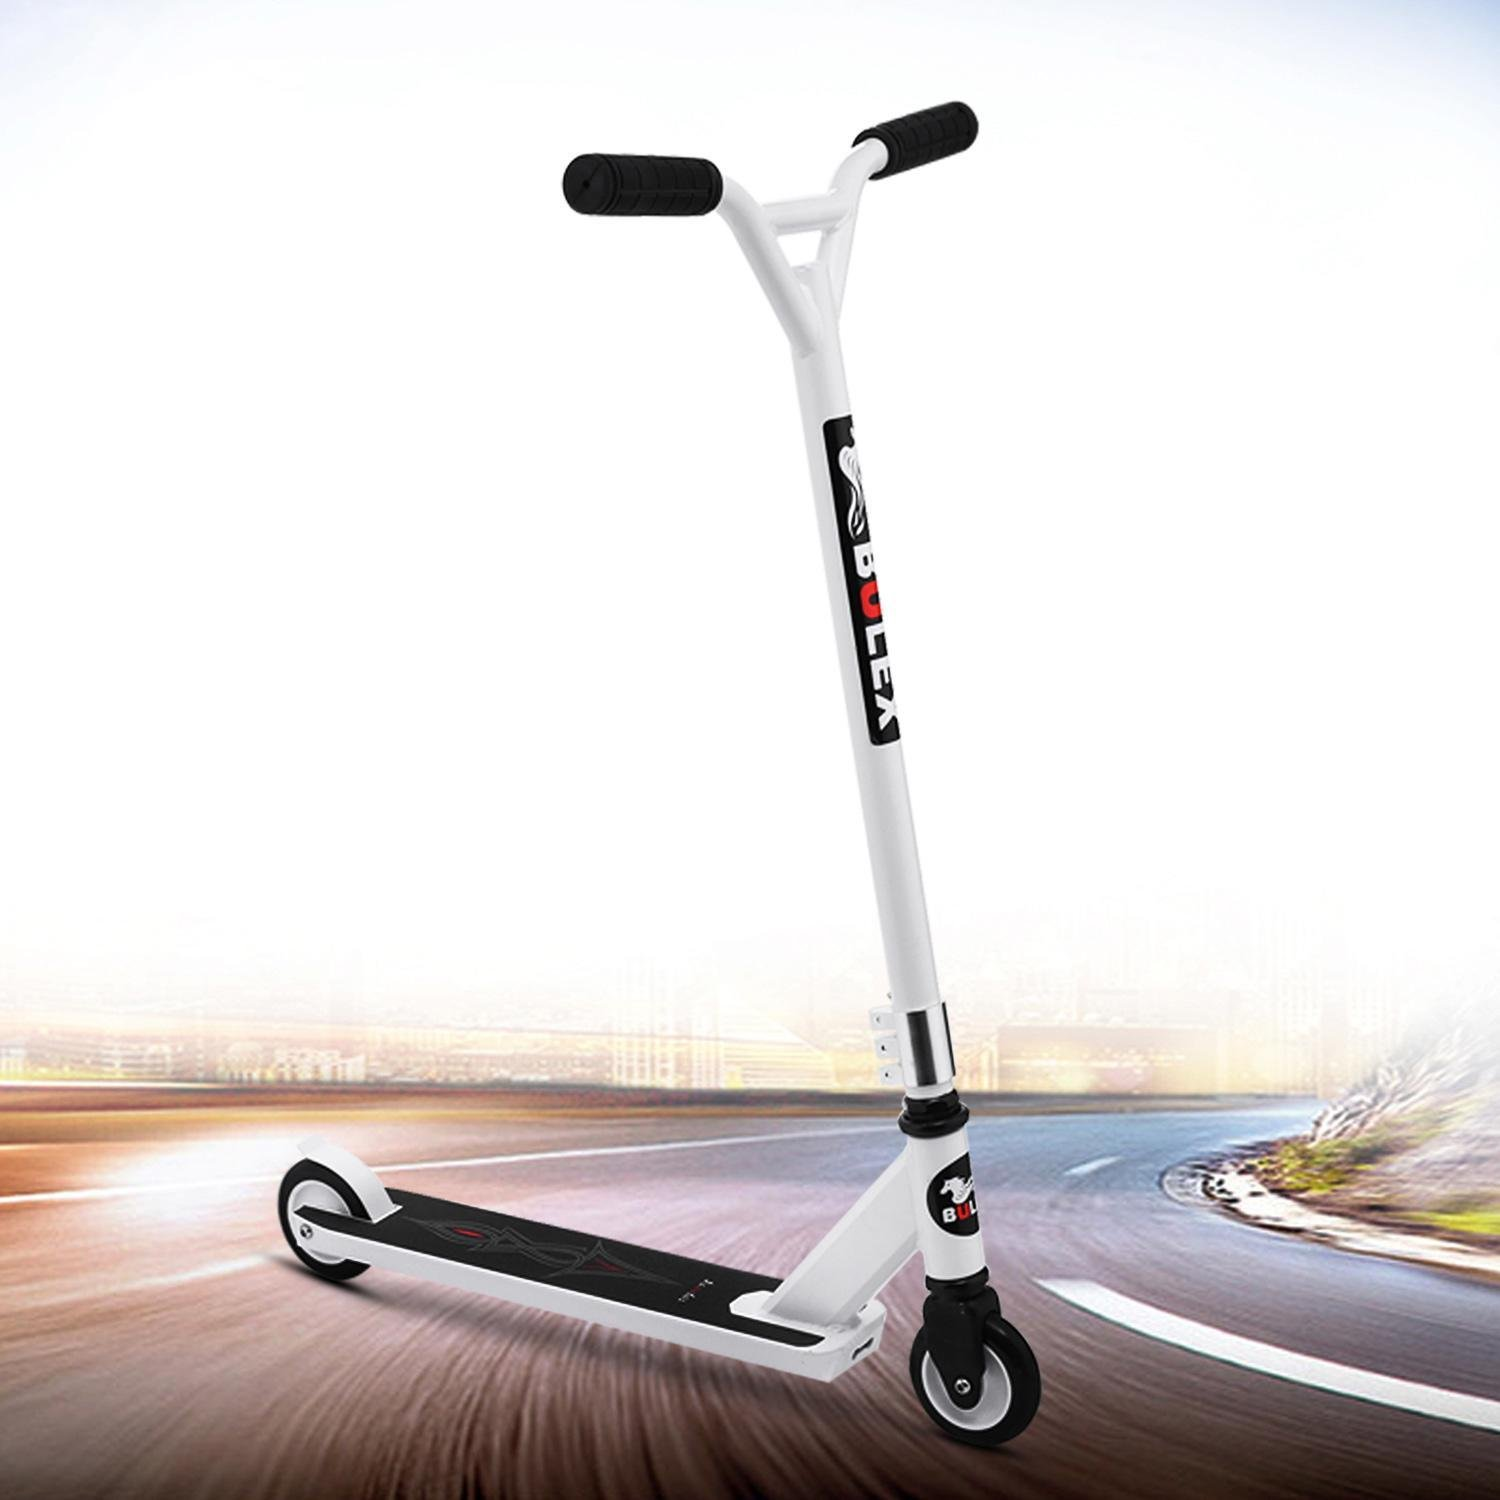 Kaluo 2-Wheel Stunt Scooter/Kick Scooter/Freestyle/Extreme Scooter Adjustable Height 220lb Weight Capacity for Teens Adults Kids (White)